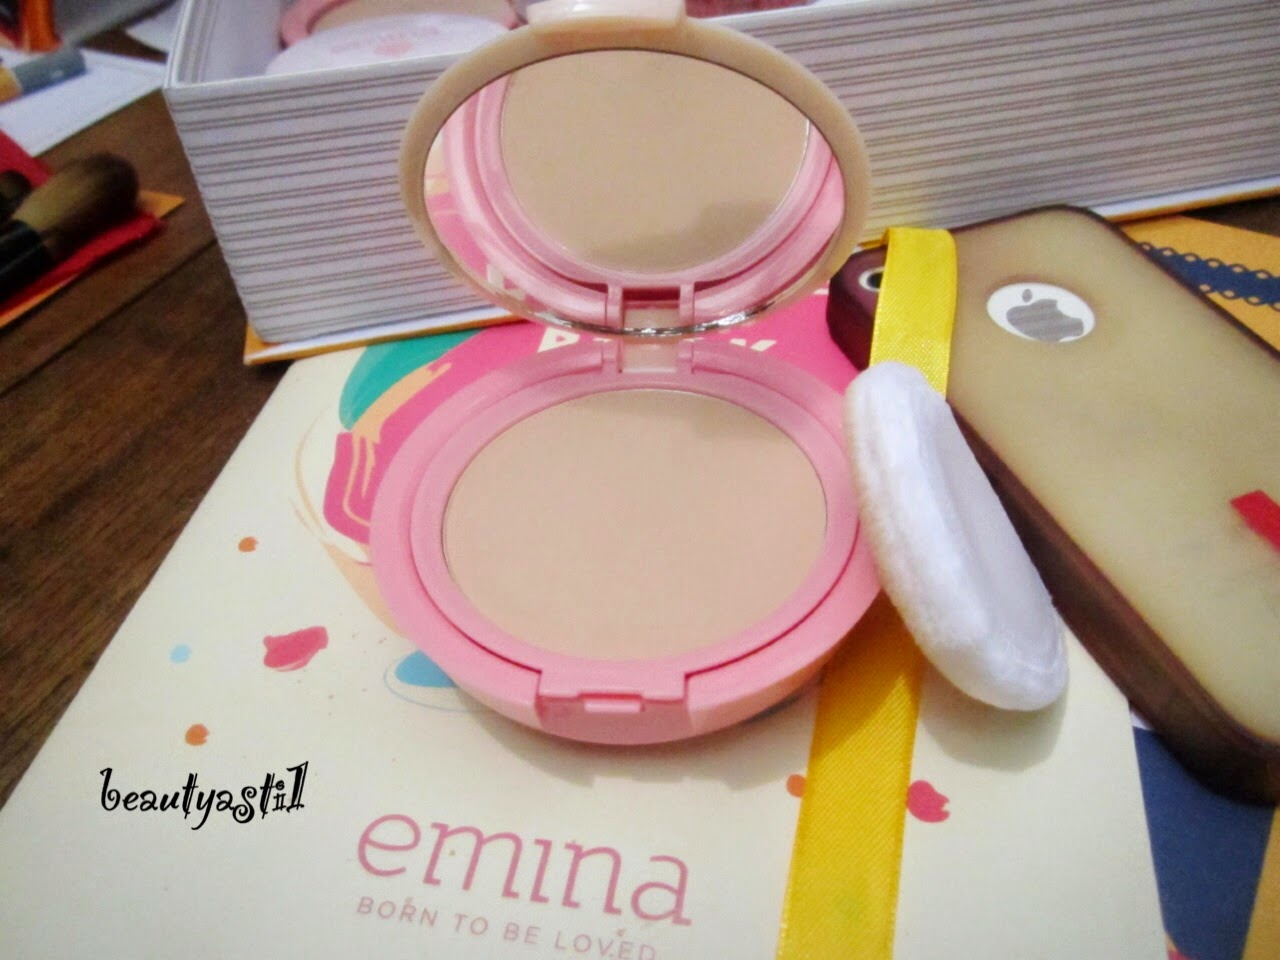 emina-cc-cream-city-chic-review.jpg